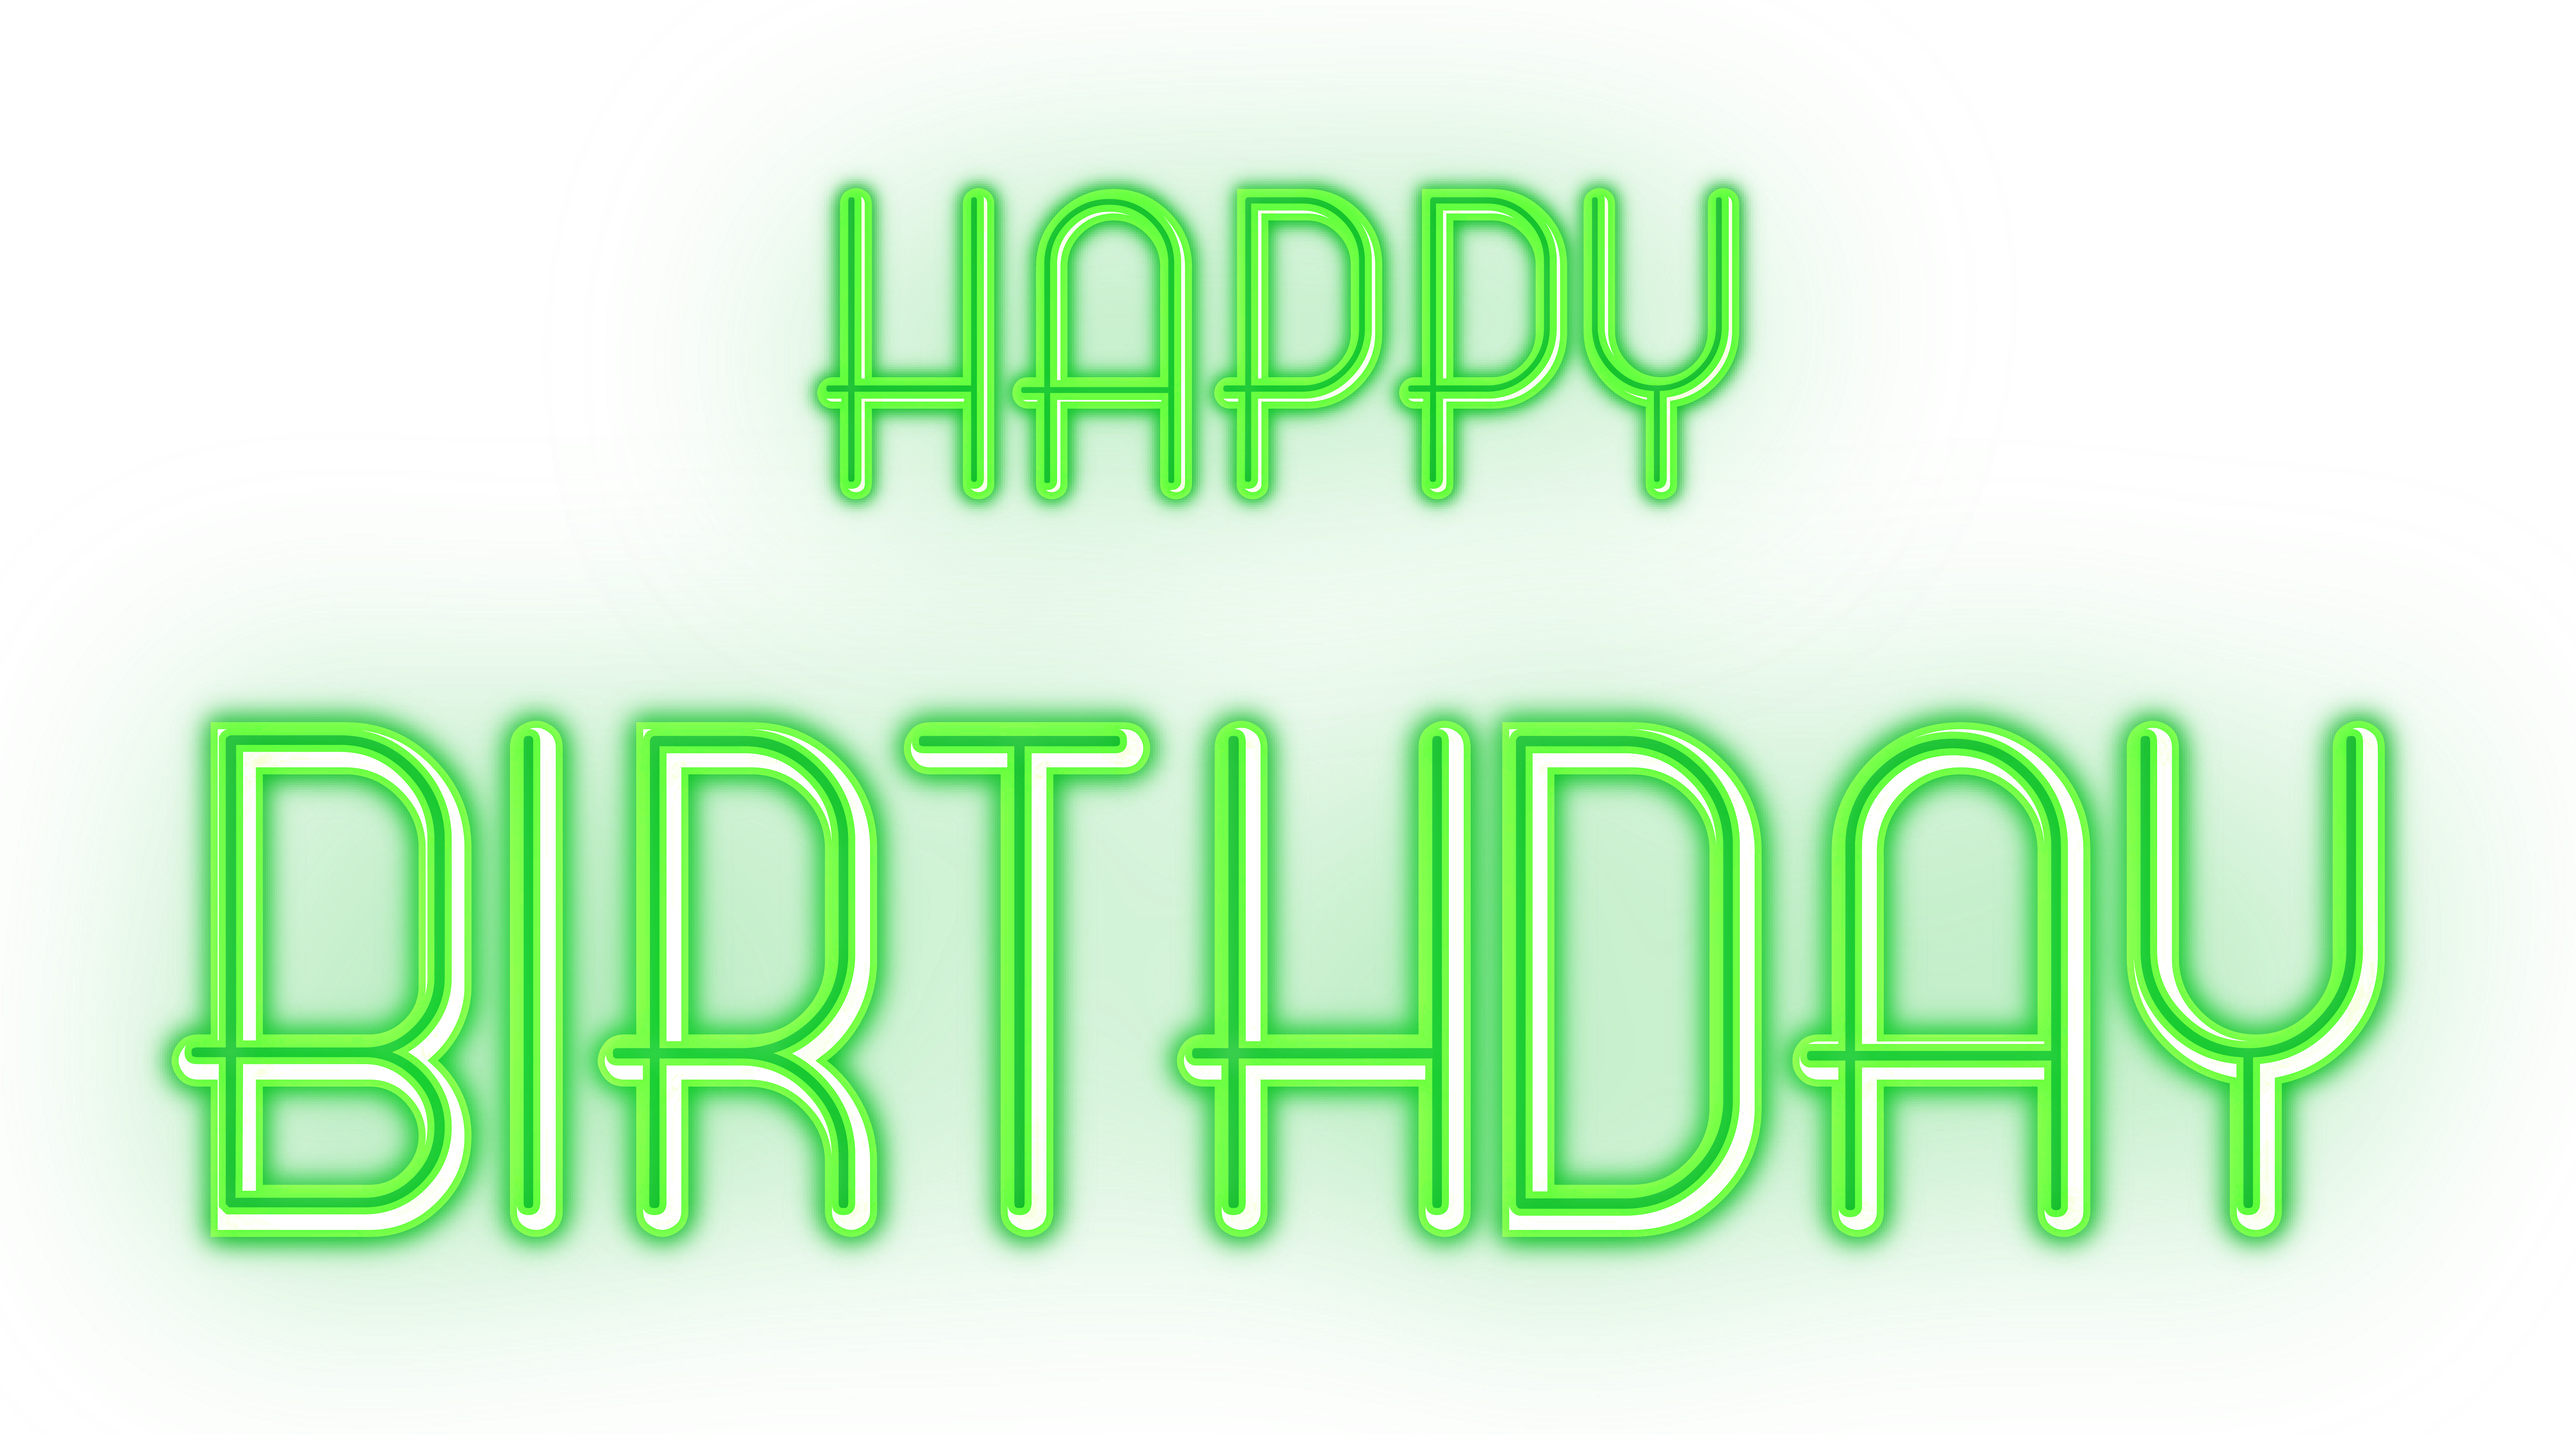 Green birthday png. Happy glowing text transparent